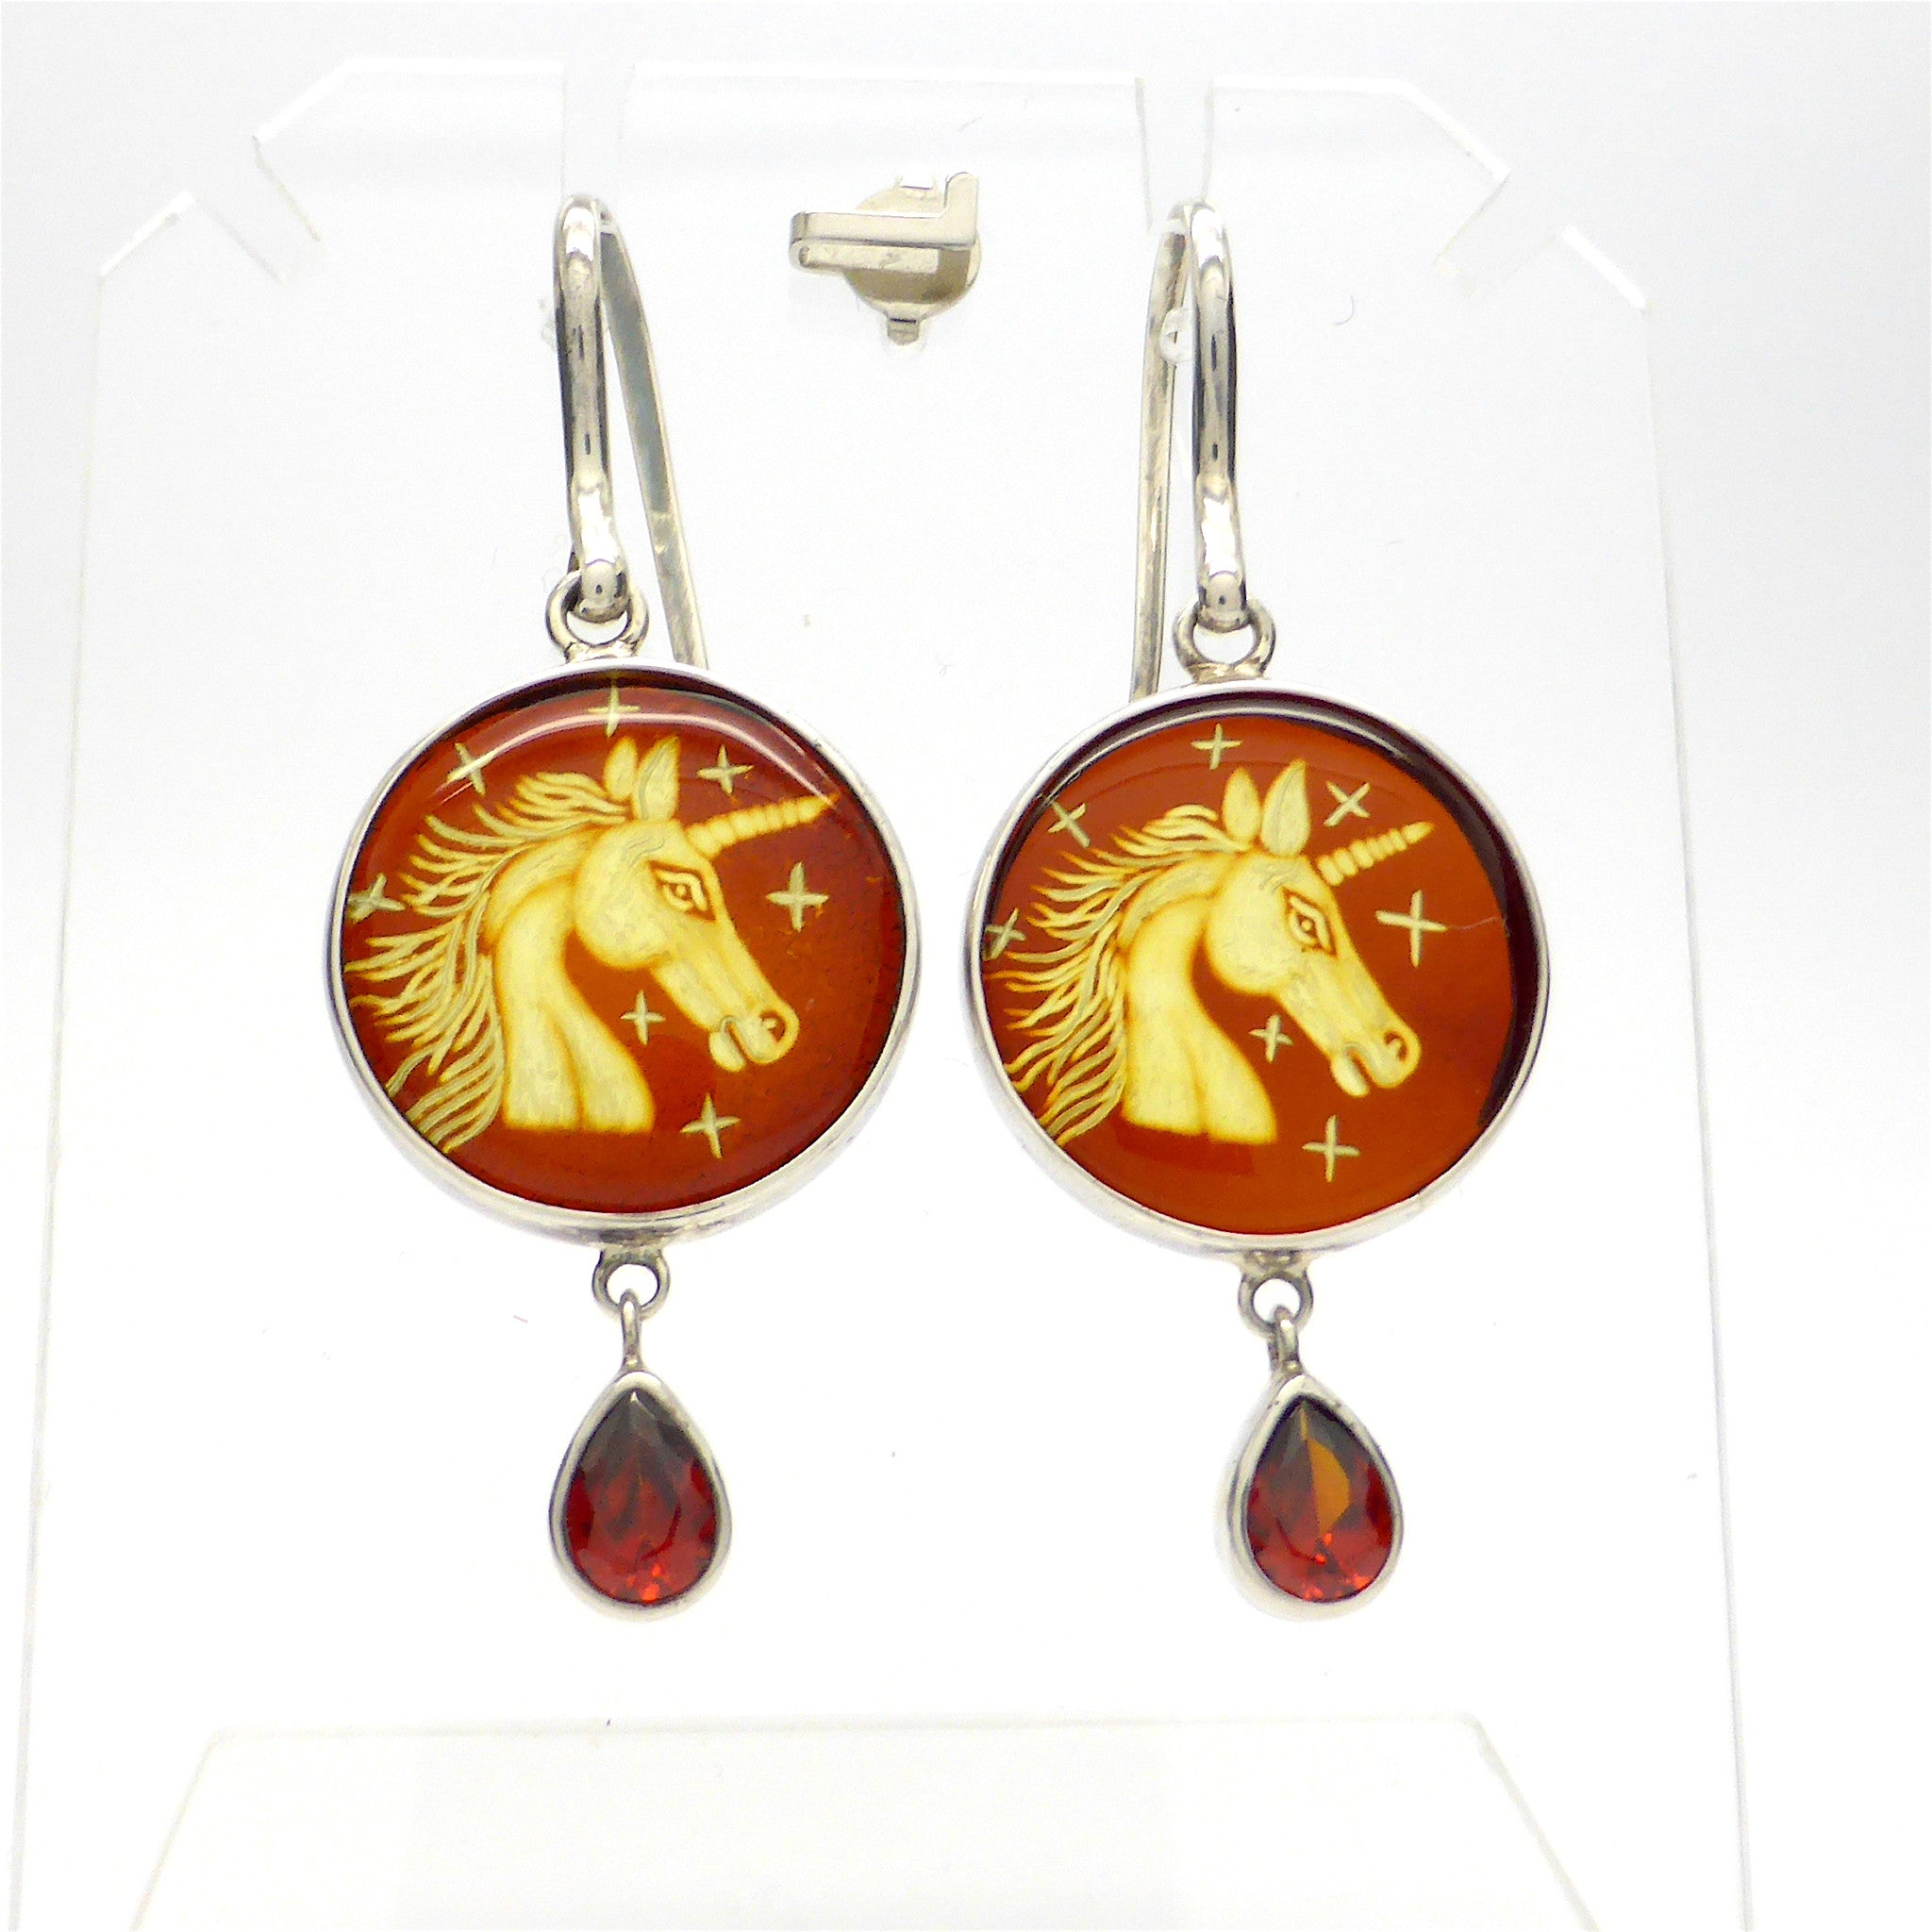 Unicorn Carved in Baltic Amber Earrings with Garnet drops | 925 Sterling Silver | Super Leo present | Crystal Heart Melbourne Australia since 1986